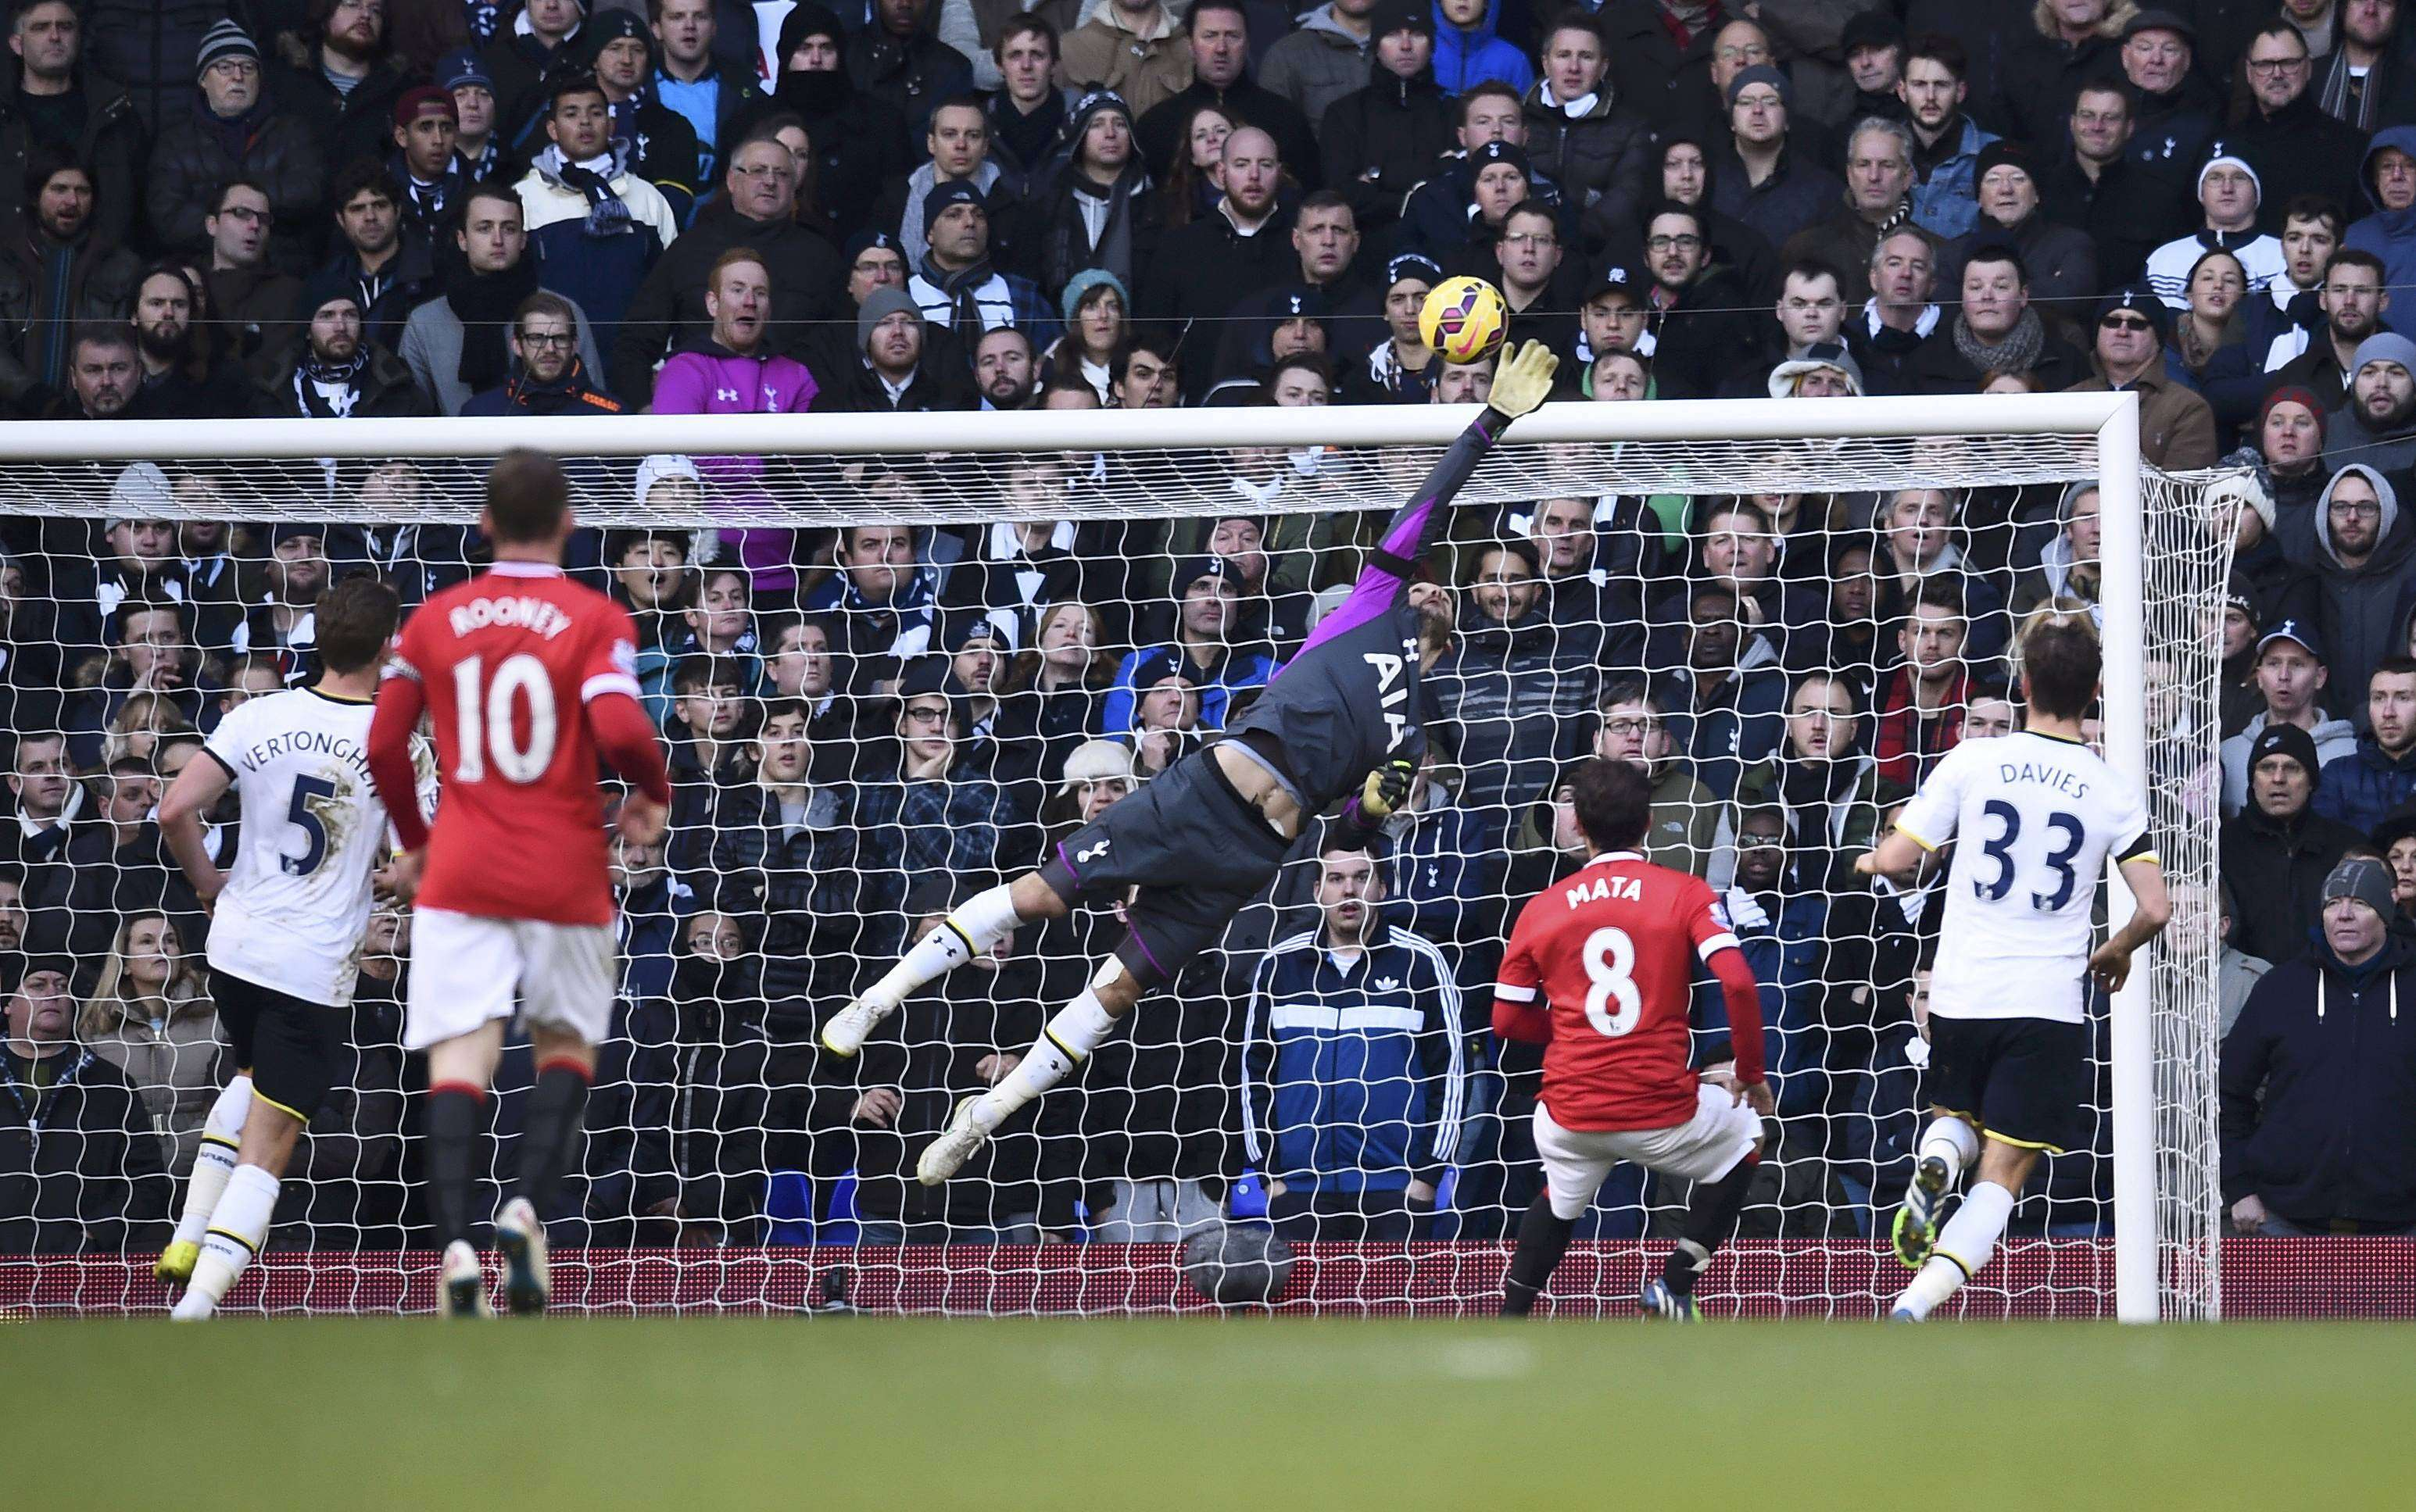 Tottenham Hotspur's Hugo Lloris saves a shot on goal during their English Premier League soccer match against Manchester United at White Hart Lane in London December 28, 2014. REUTERS/Dylan Martinez (BRITAIN - Tags: SOCCER SPORT) FOR EDITORIAL USE ONLY. NOT FOR SALE FOR MARKETING OR ADVERTISING CAMPAIGNS. EDITORIAL USE ONLY. NO USE WITH UNAUTHORIZED AUDIO, VIDEO, DATA, FIXTURE LISTS, CLUB/LEAGUE LOGOS OR 'LIVE' SERVICES. ONLINE IN-MATCH USE LIMITED TO 45 IMAGES, NO VIDEO EMULATION. NO USE IN BETTING, GAMES OR SINGLE CLUB/LEAGUE/PLAYER PUBLICATIONS. Foto: DYLAN MARTINEZ/REUTERS